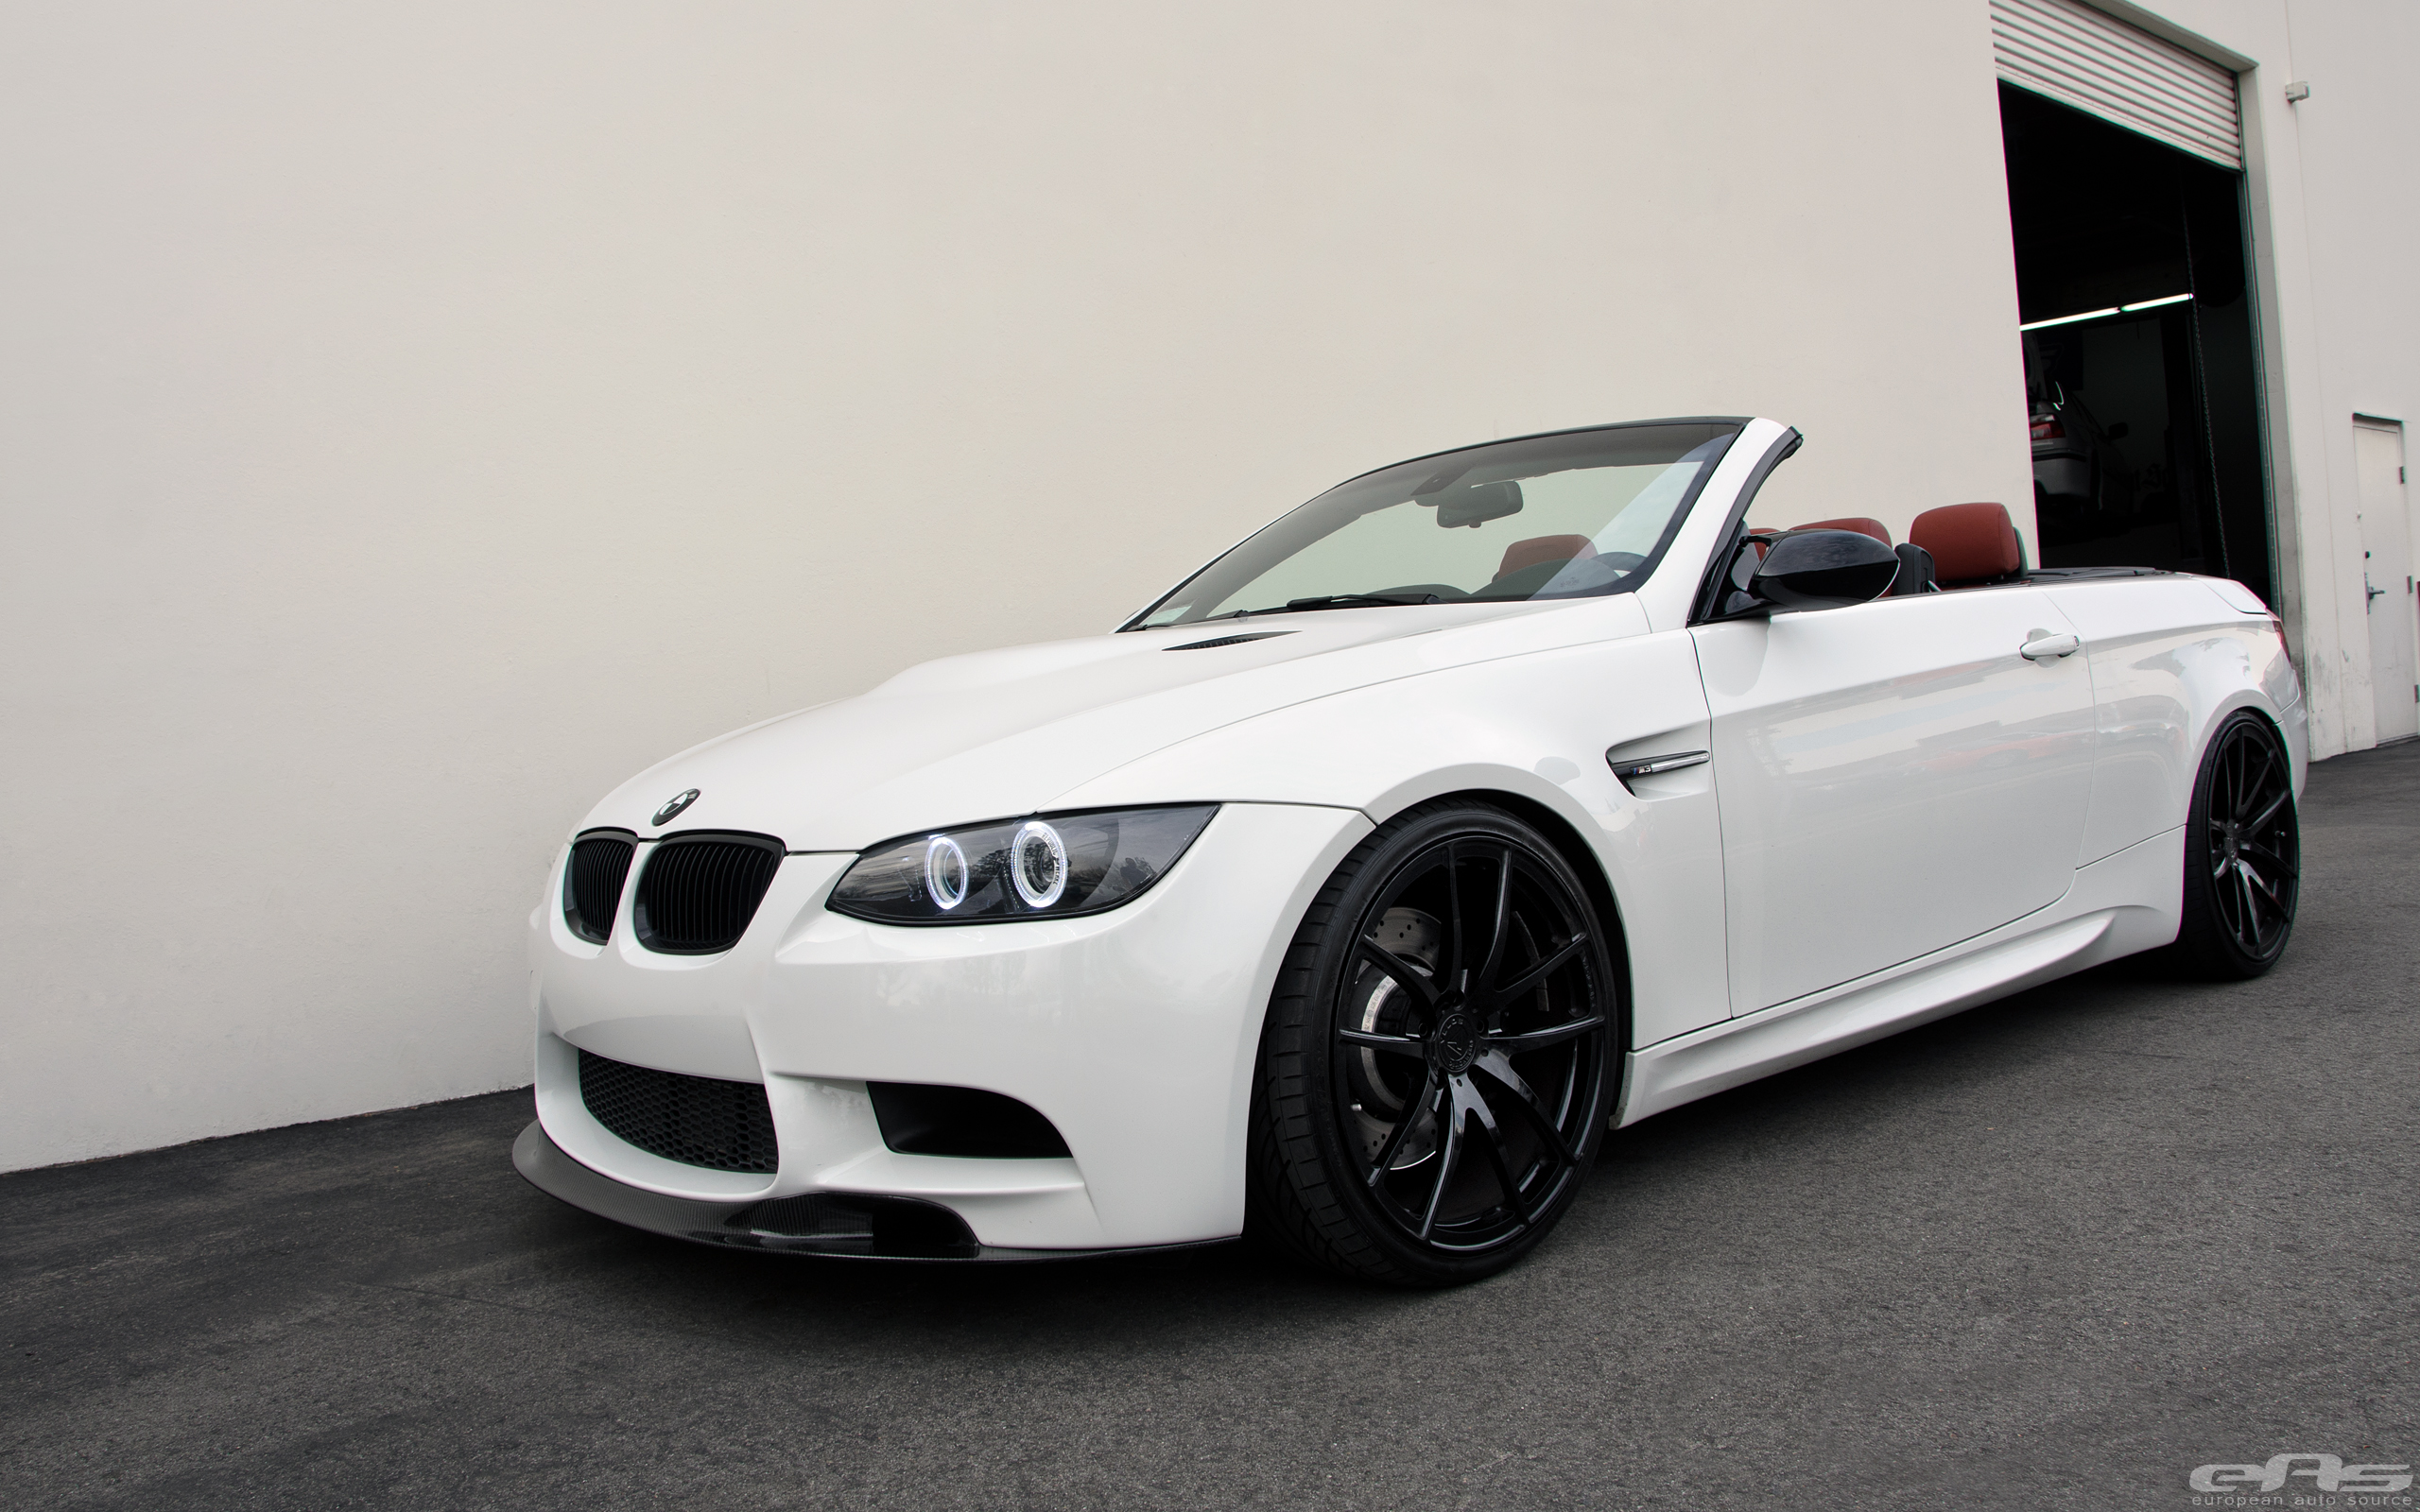 Tuned Bmw E93 M3 Convertible Puts Down 376 Hp At The Wheels On Dyno